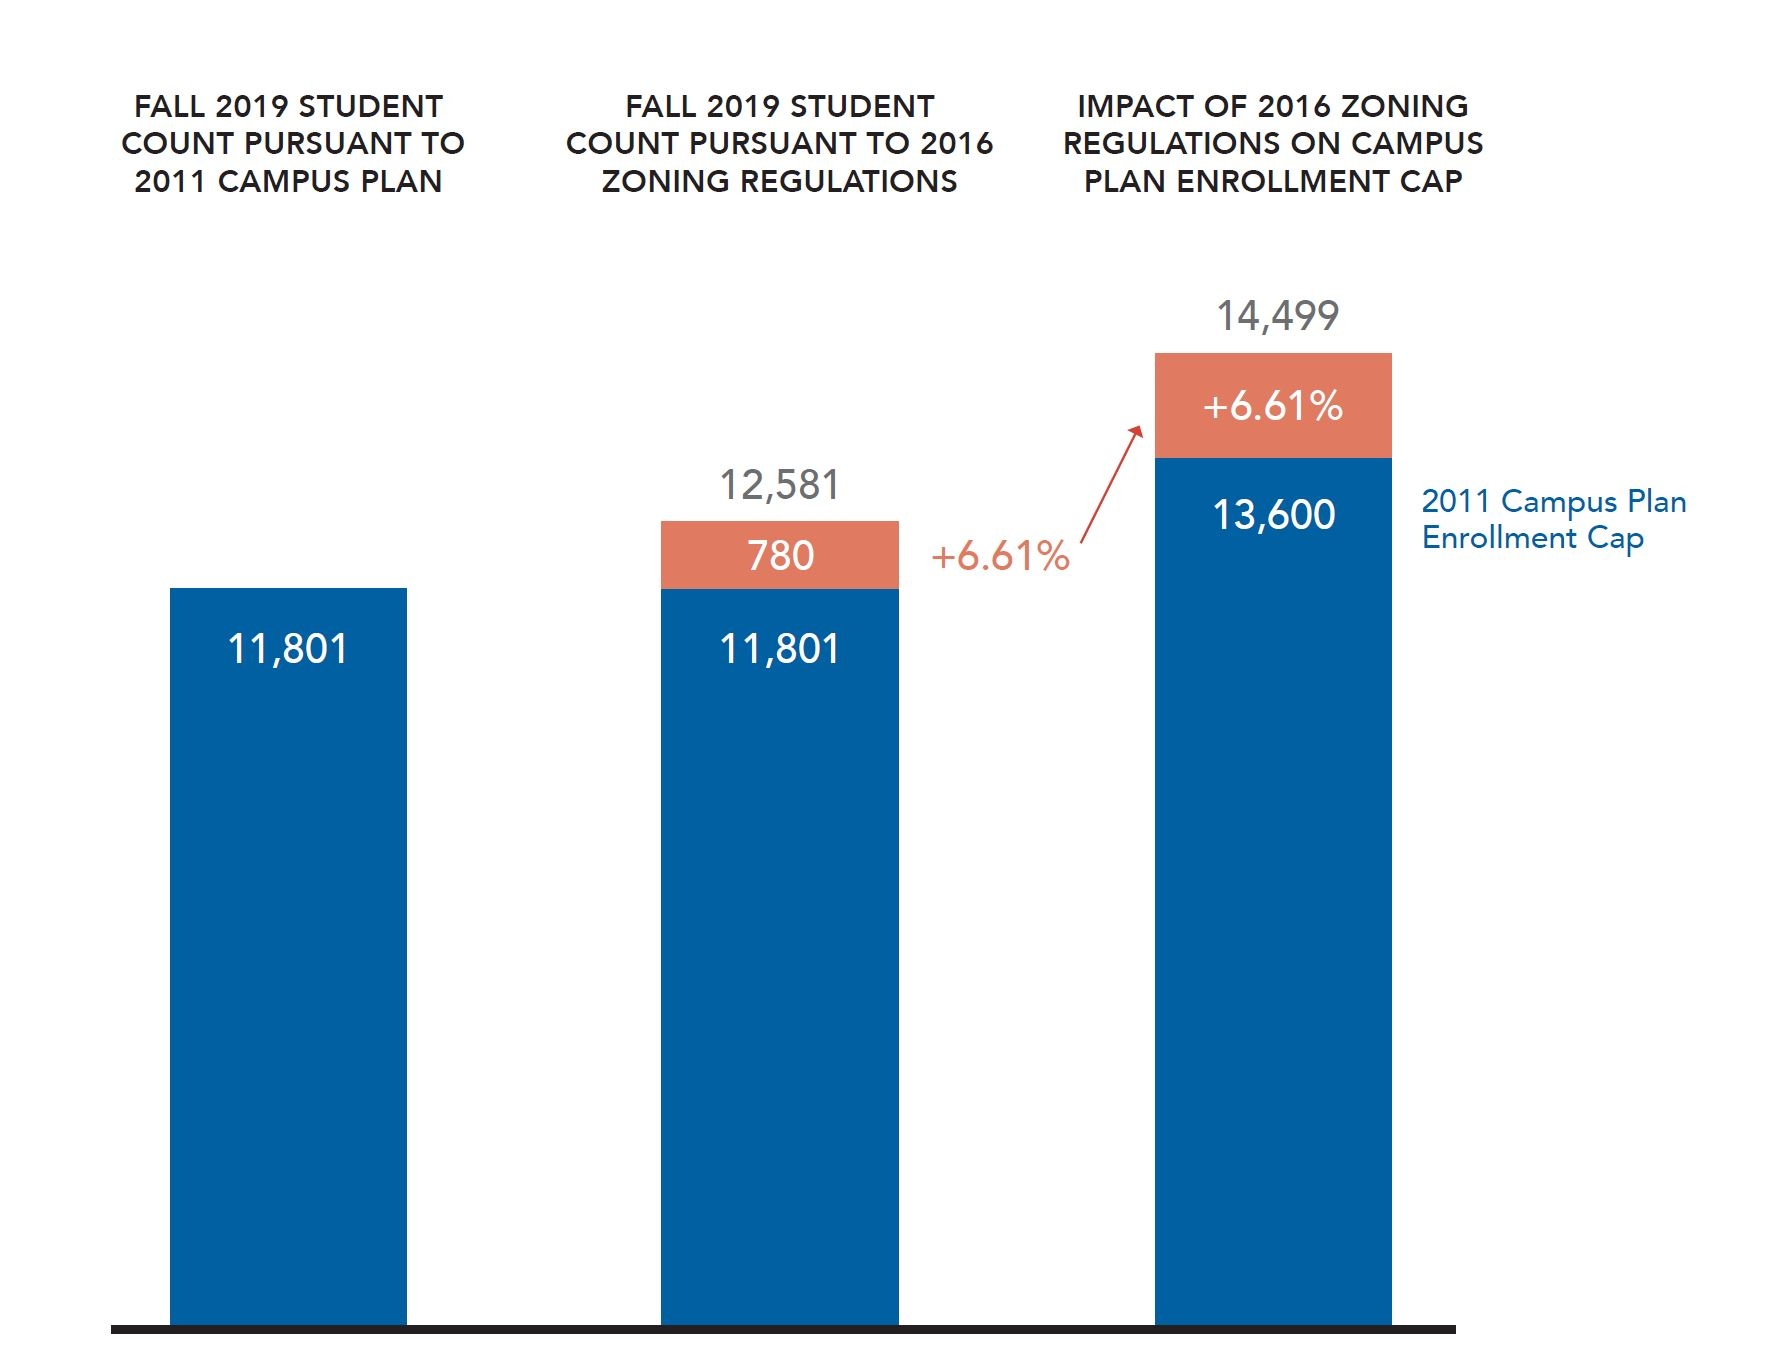 Fall 2019 enrollment counts based on the 2011 Campus Plan and 2016 zoning regulations